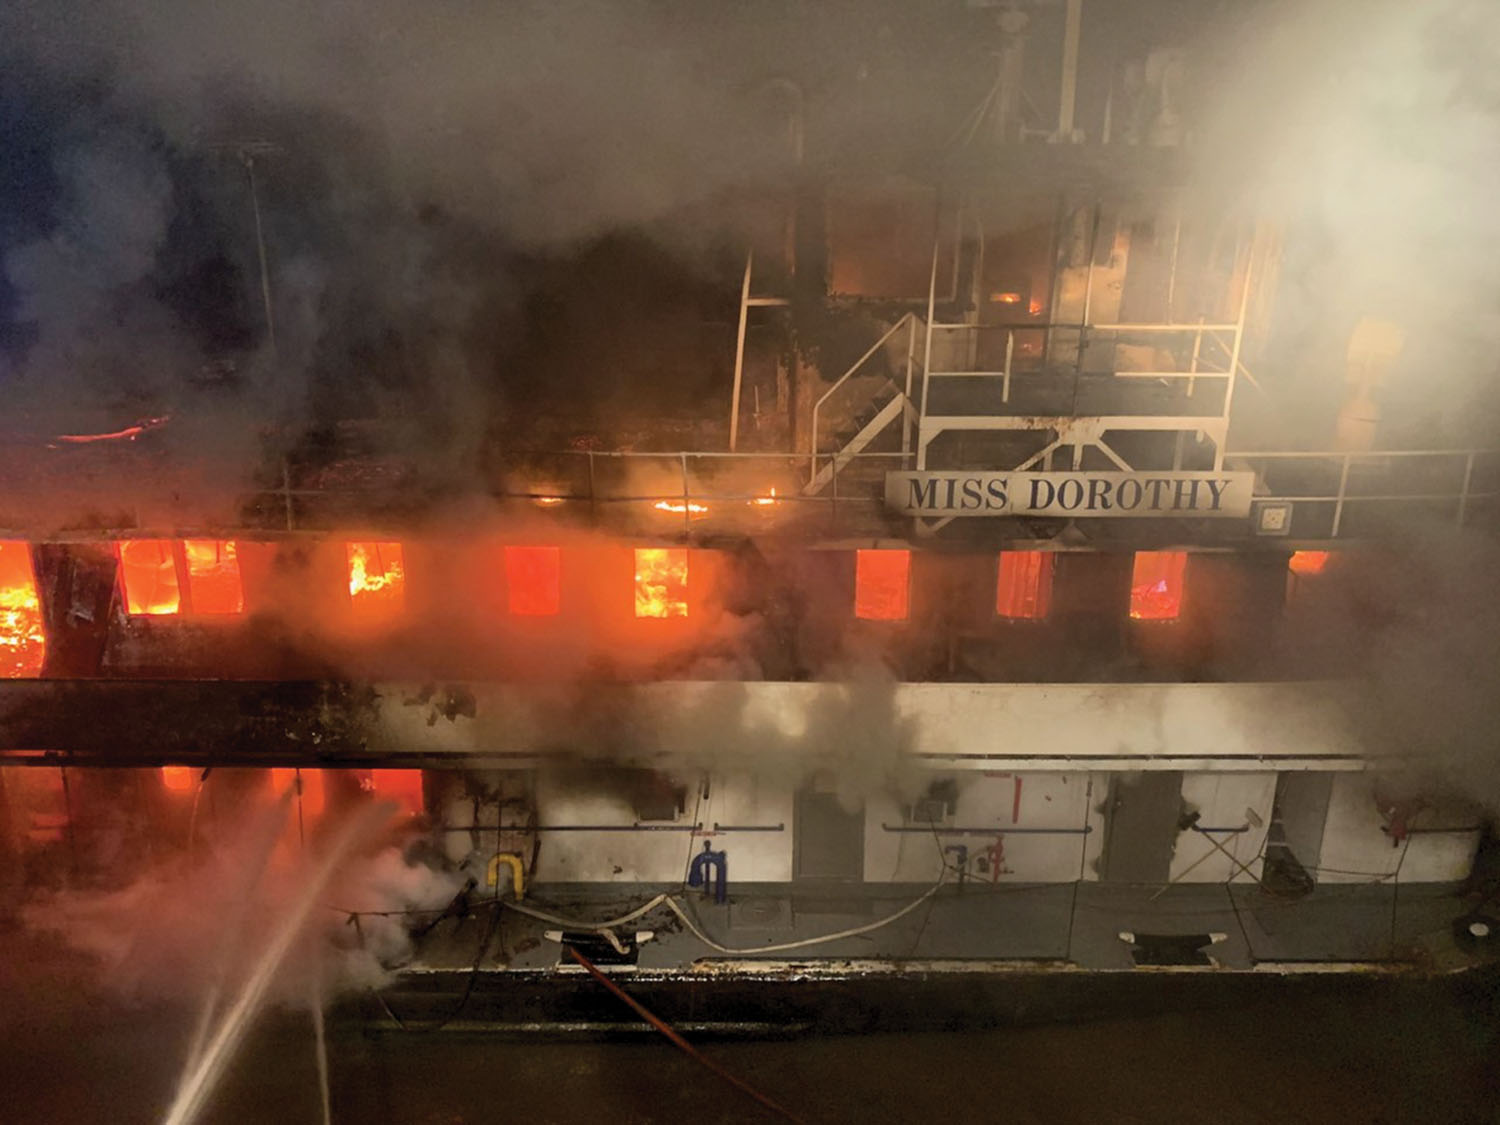 Mv. Miss Dorothy fully engulfed in flames March 17. (Photo courtesy of Baton Rouge Fire Department)